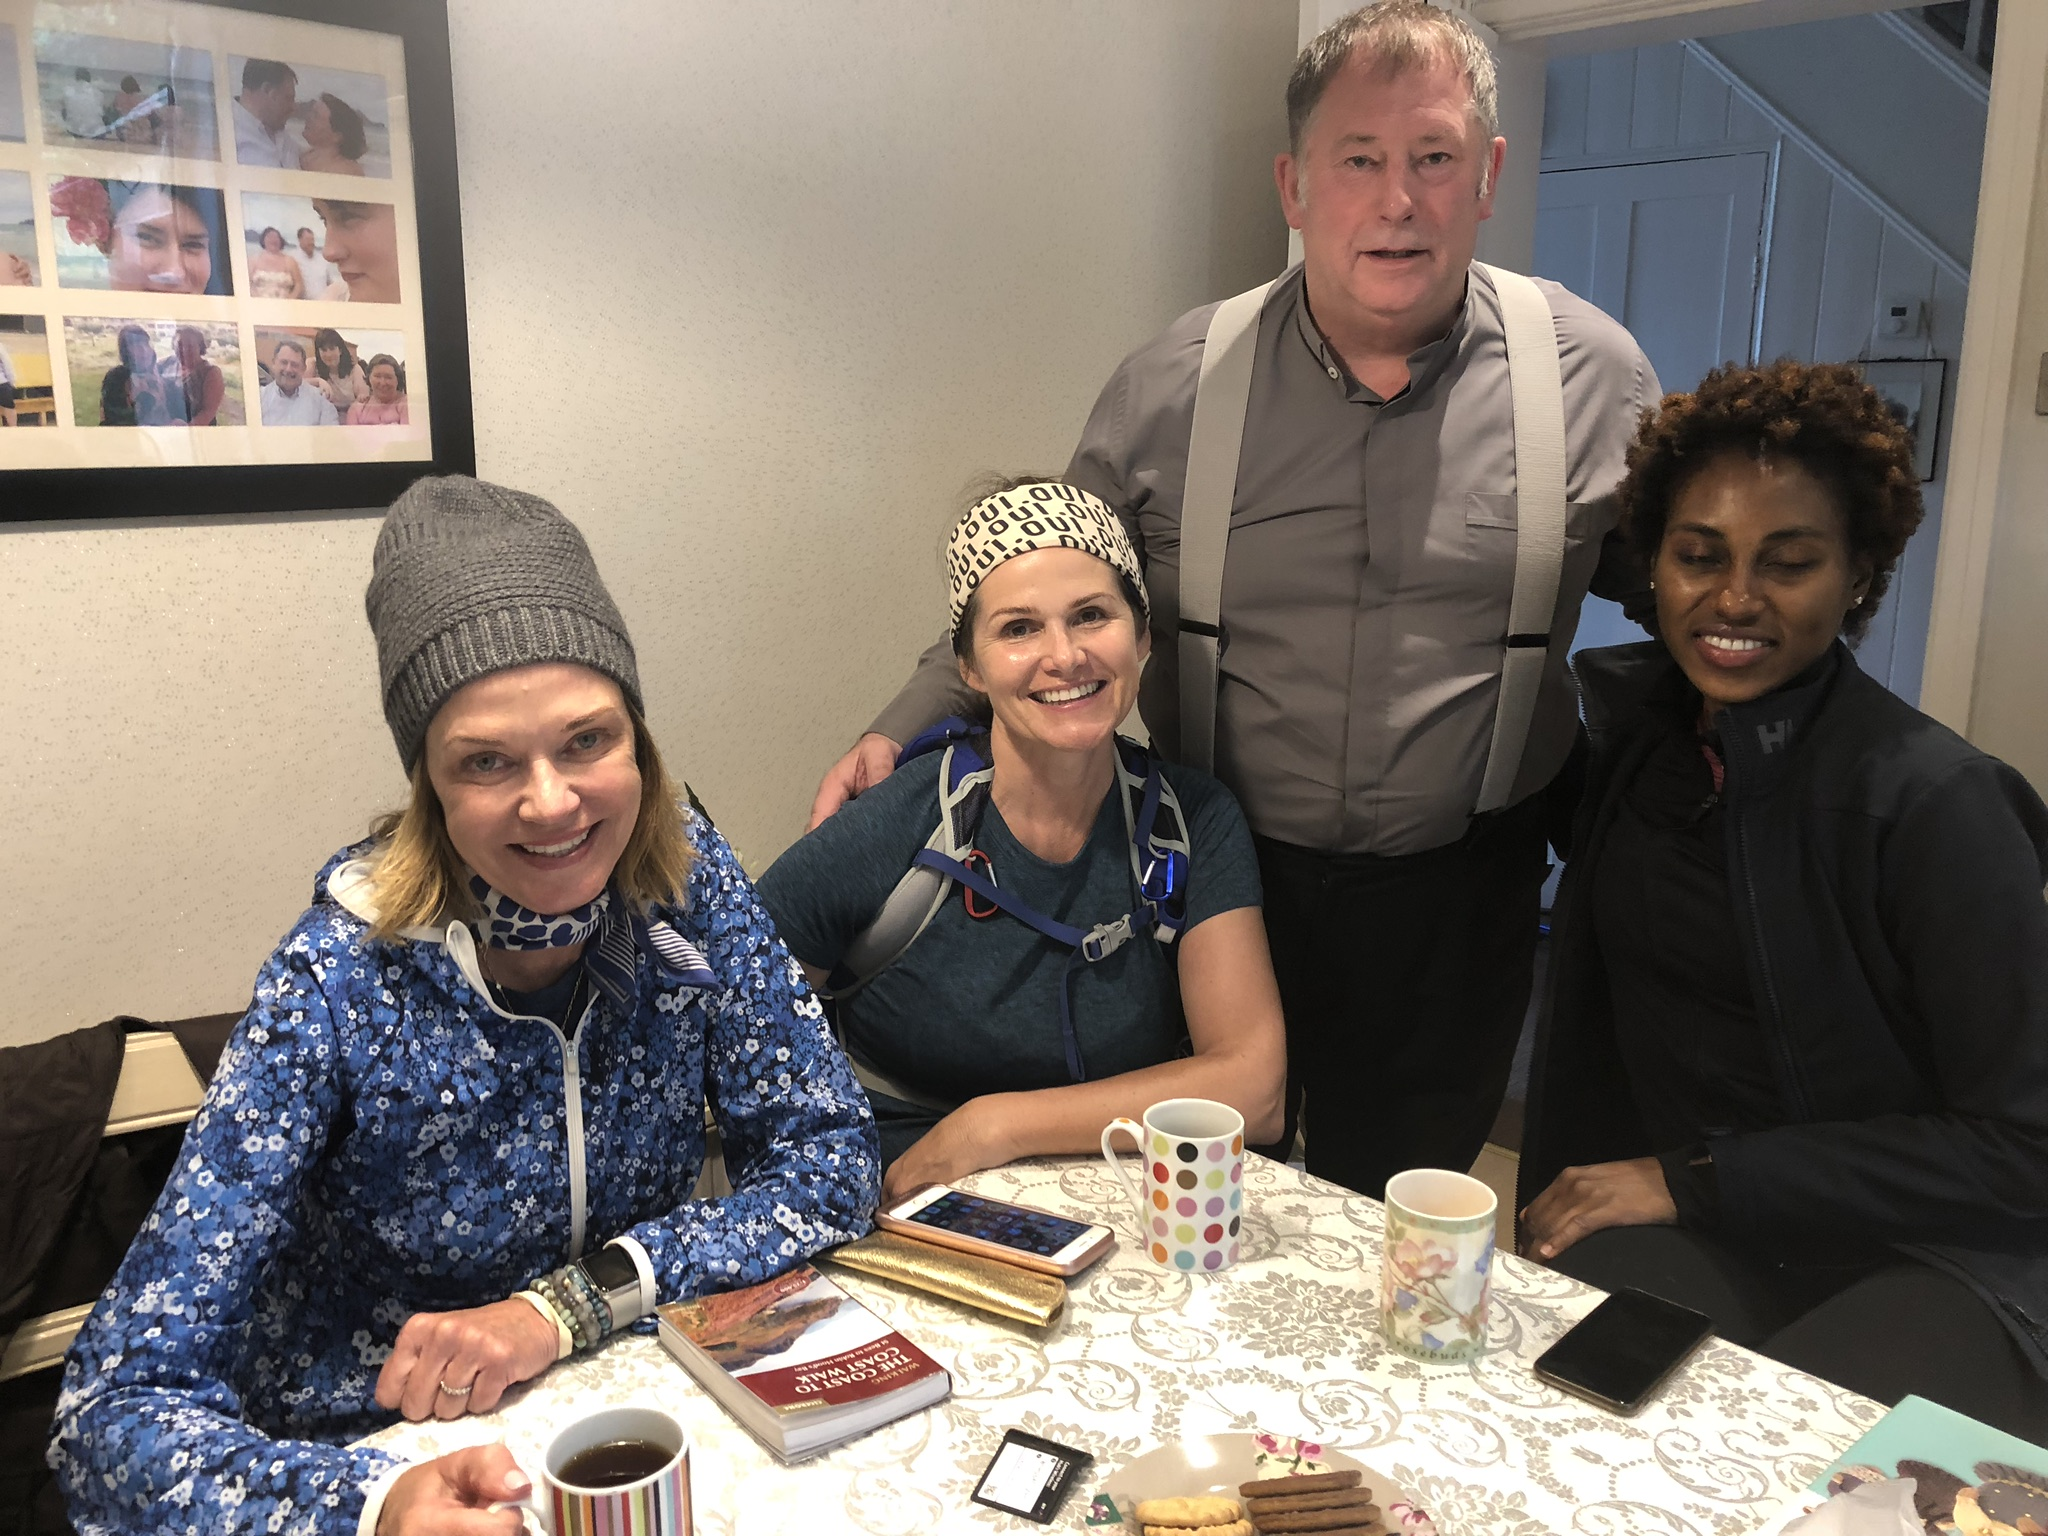 Alan Coates and his lovely wife Penny served us tea and biscuits and helped three lost Americans get back on the path. You can't plan days like this.